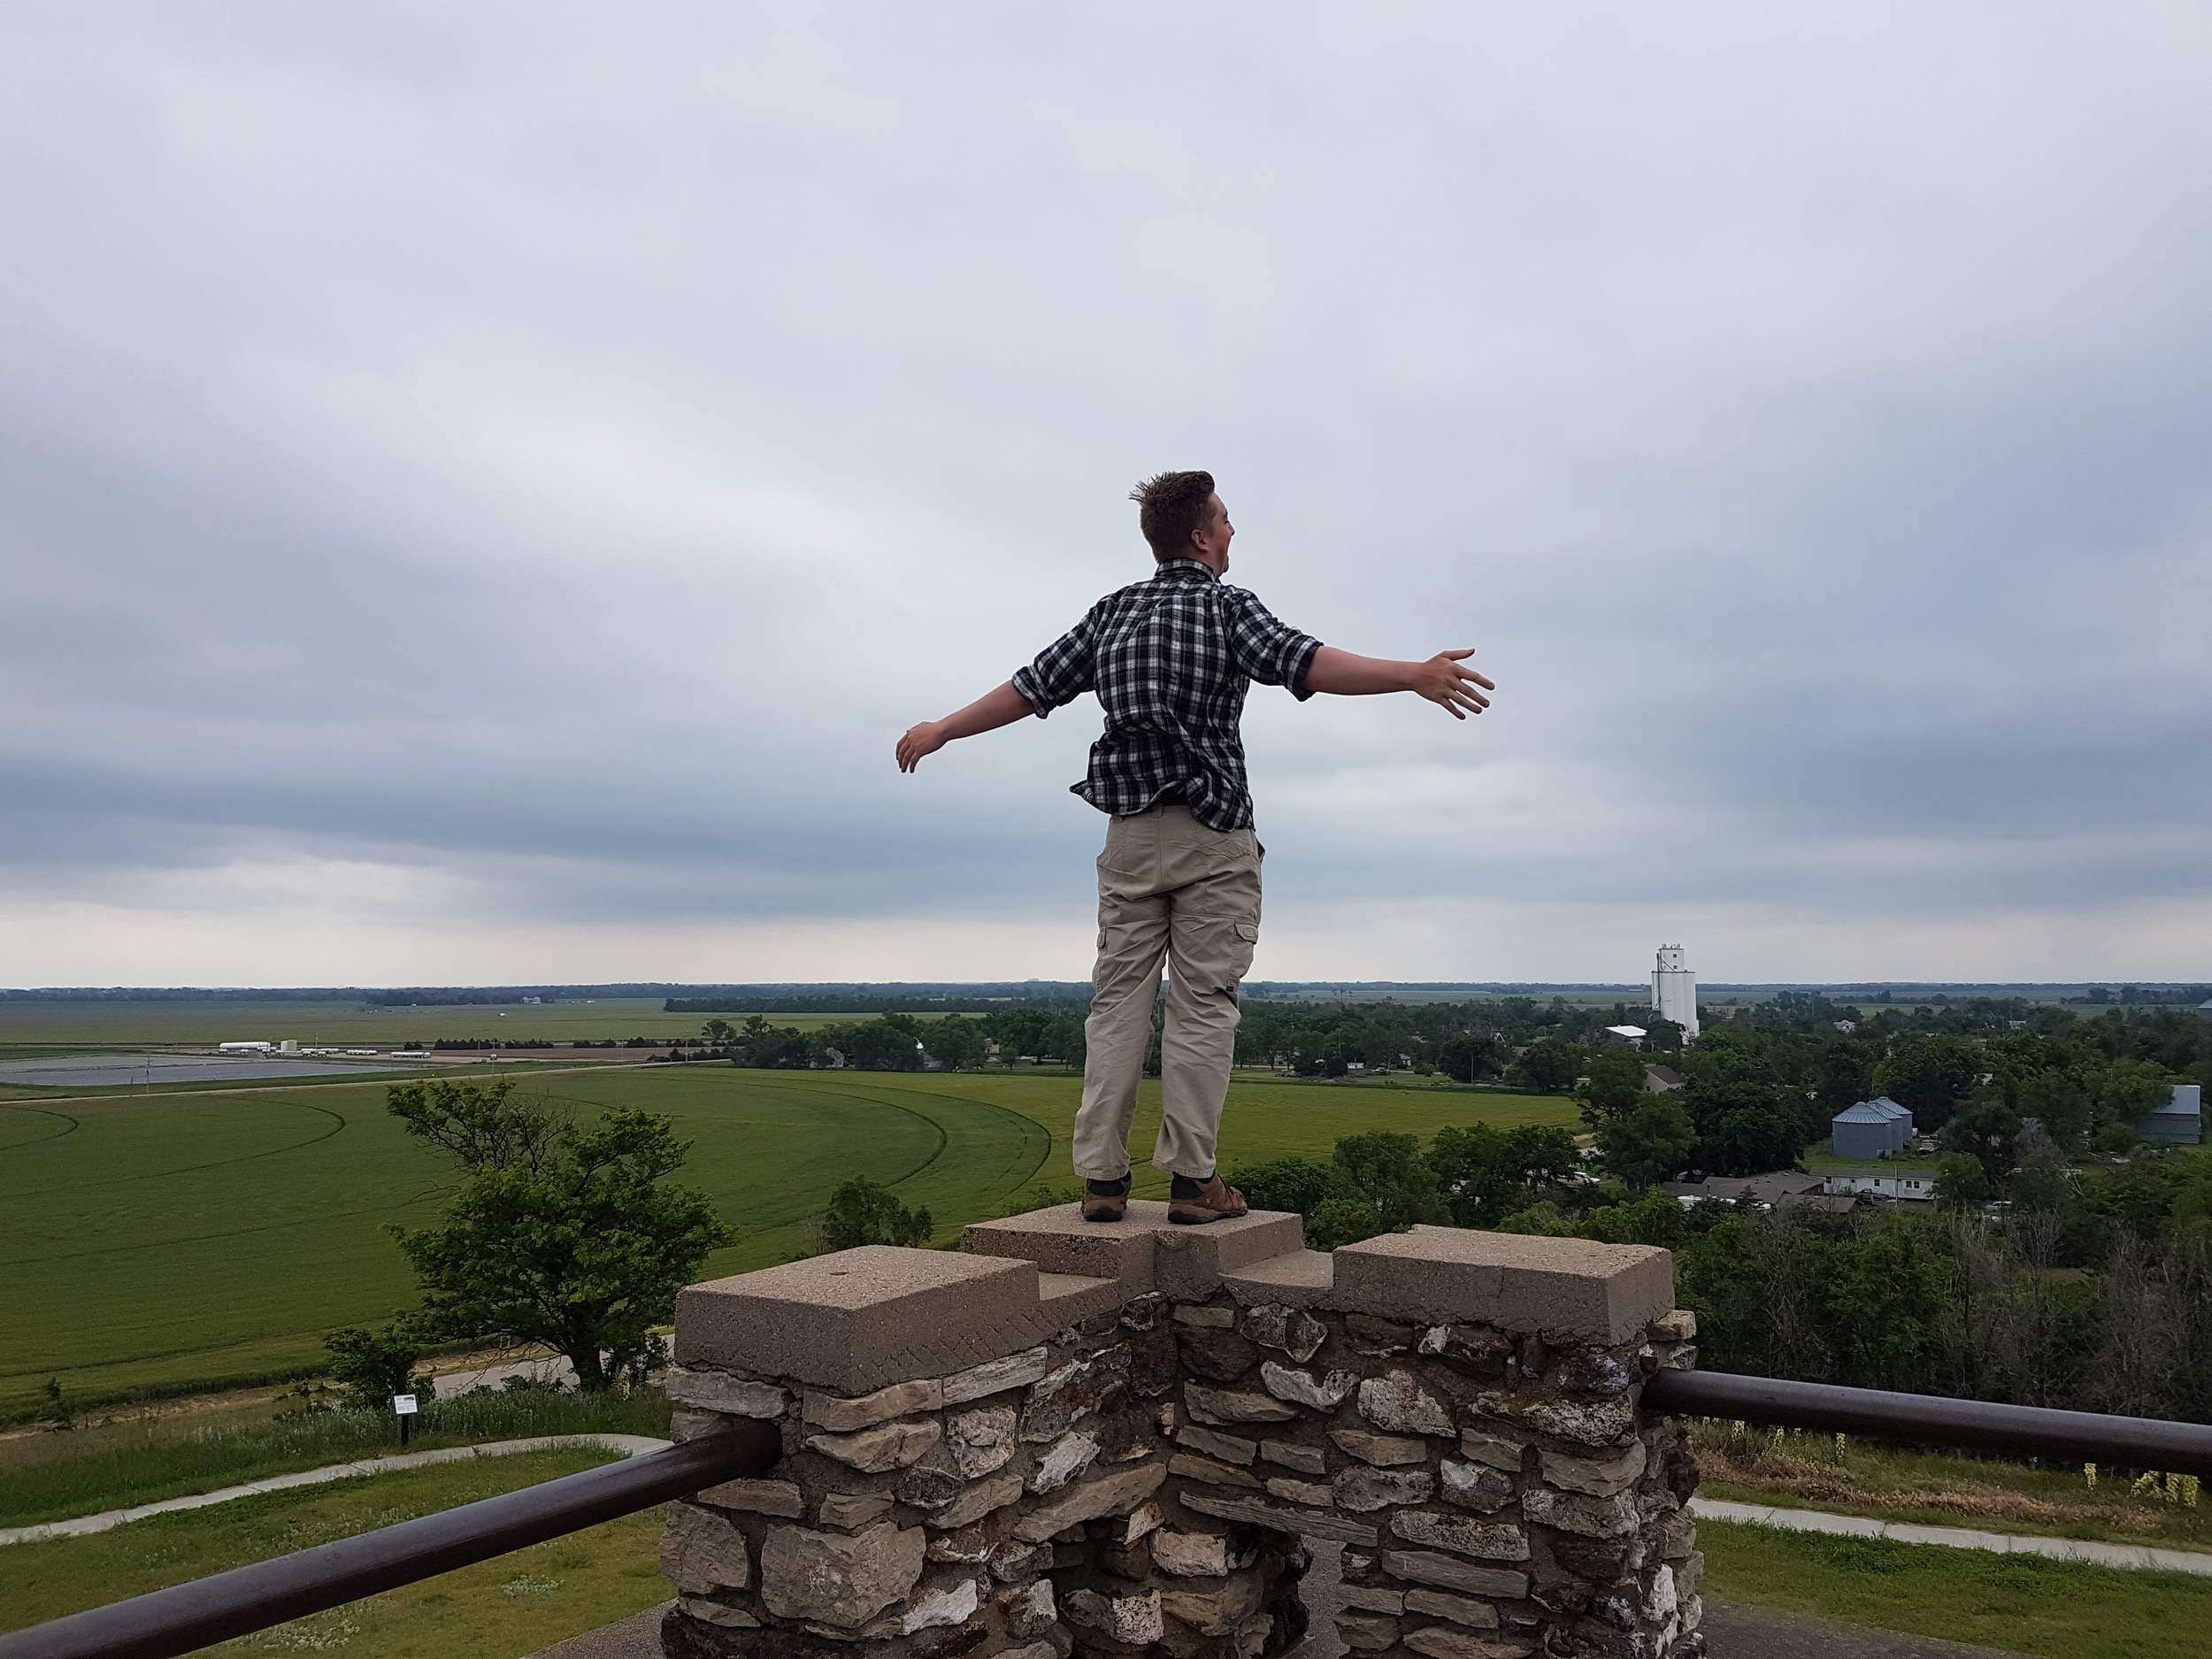 Iain feeling the breeze above Pawnee Rock, KS, just before our final leg home.